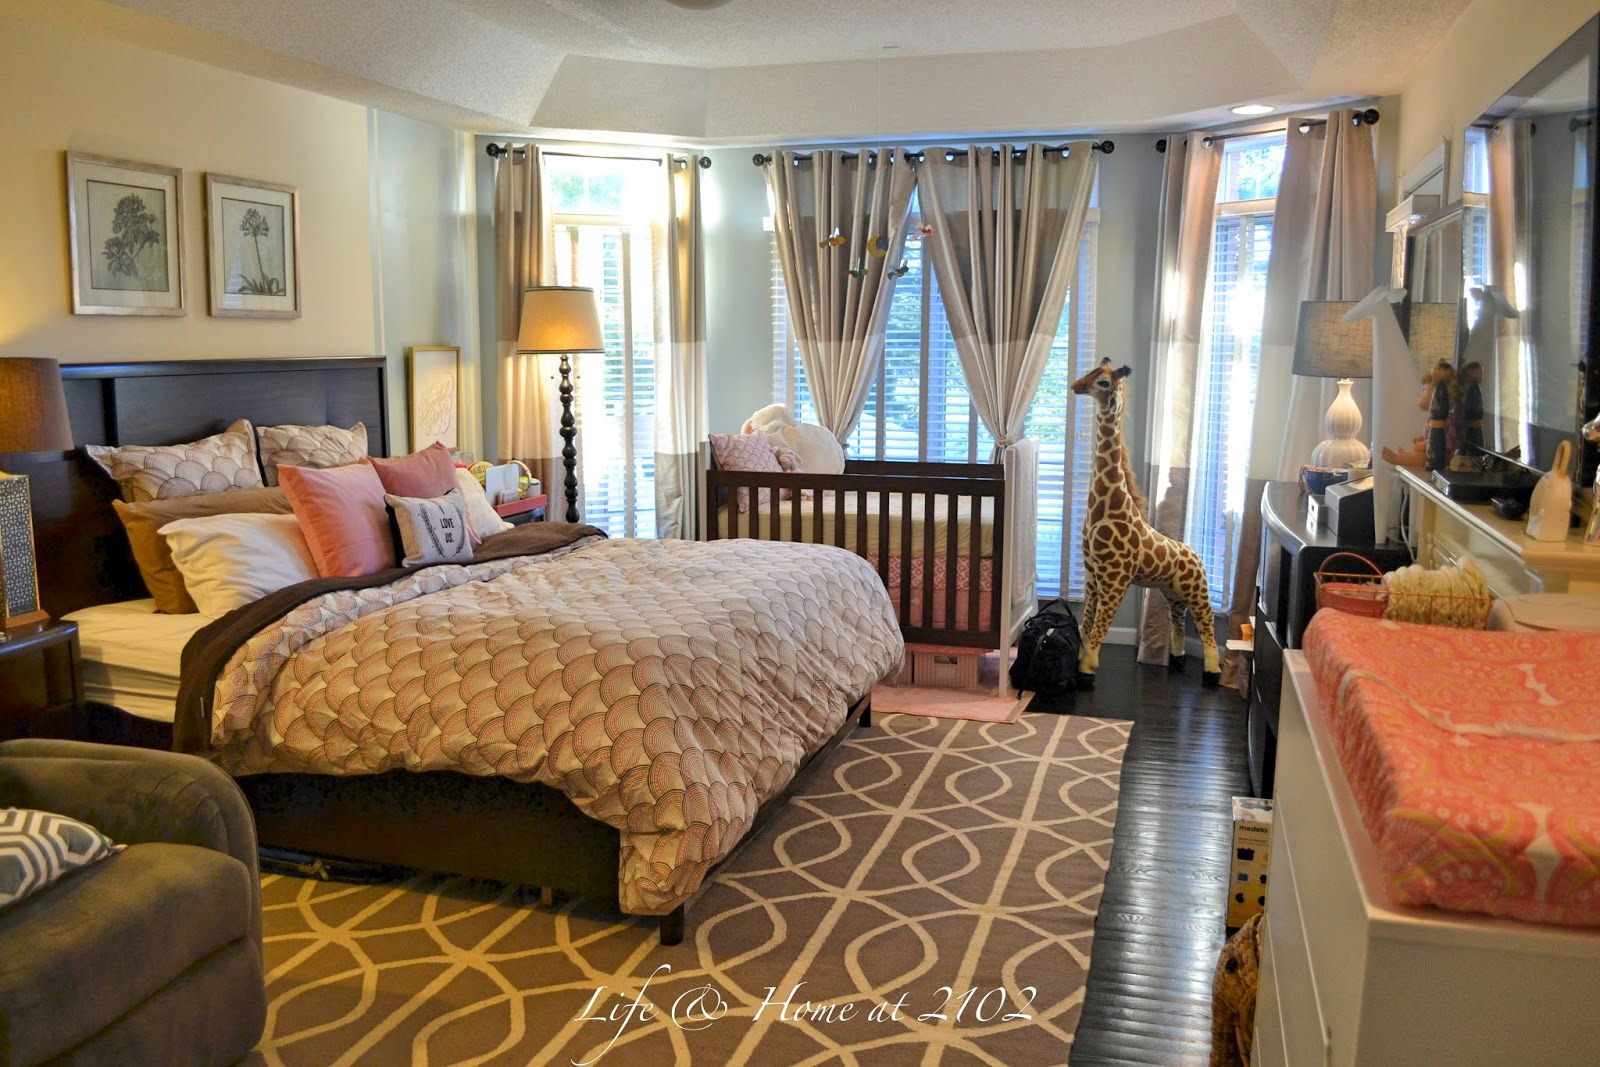 Life home at 2102 final touches in the master bedroom nursery Master bedroom with nursery ideas